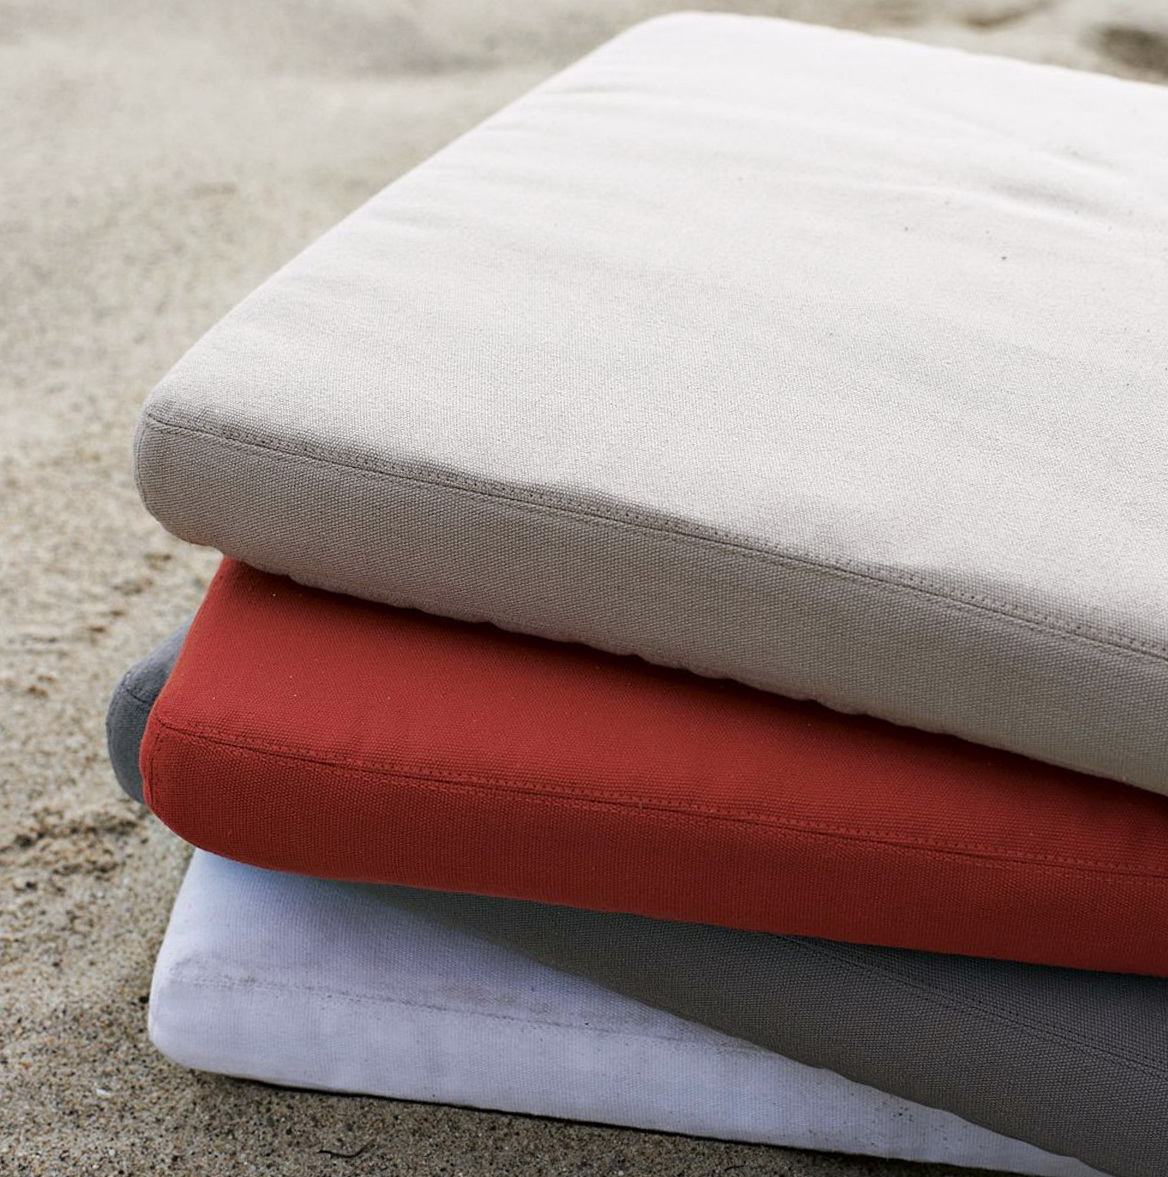 Outdoor Bench Cushions Australia Outdoor Seating Cushions Australia Home Design Ideas